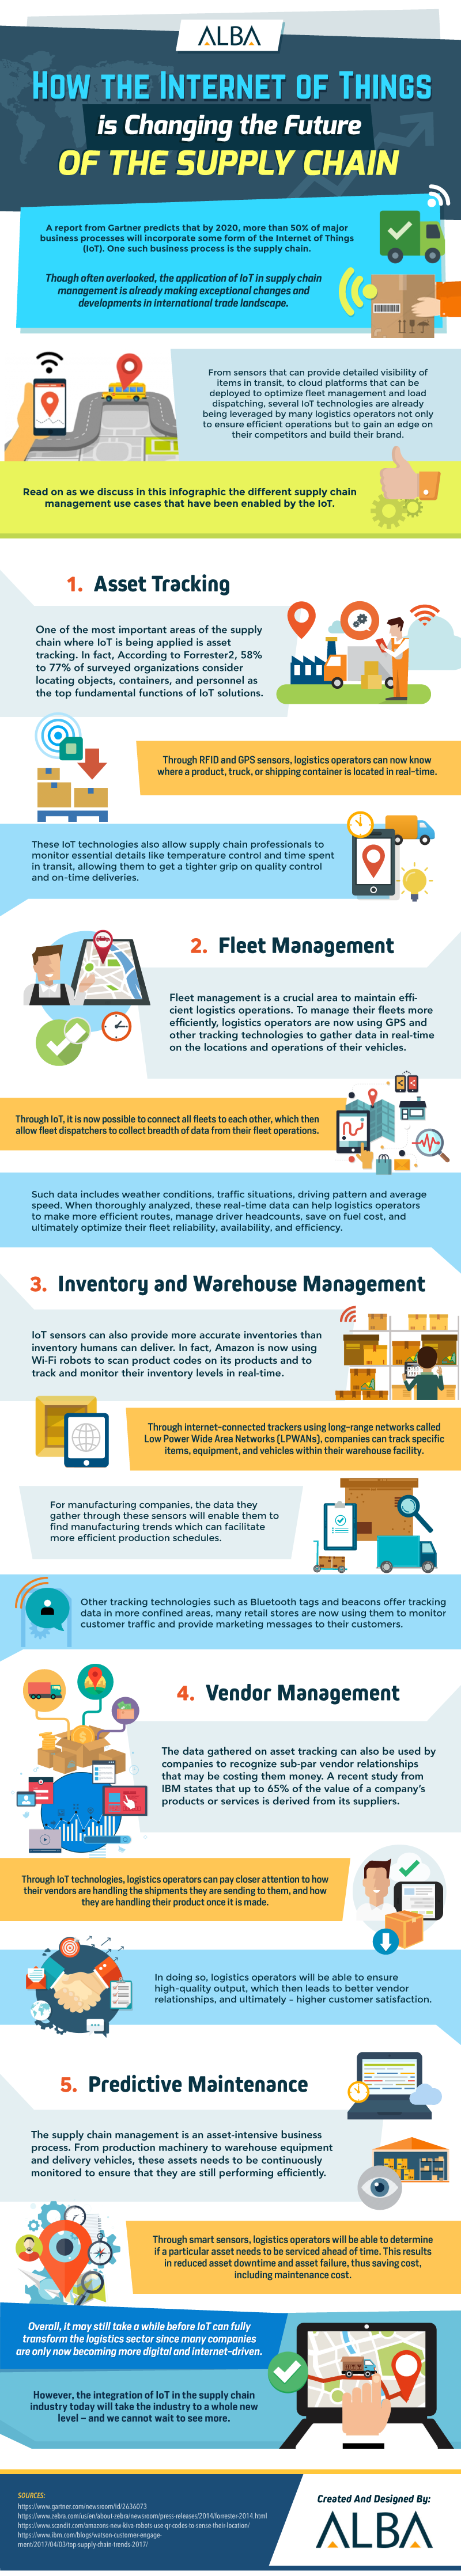 How the Internet of Things is Changing the Future of the Supply Chain - Infographic